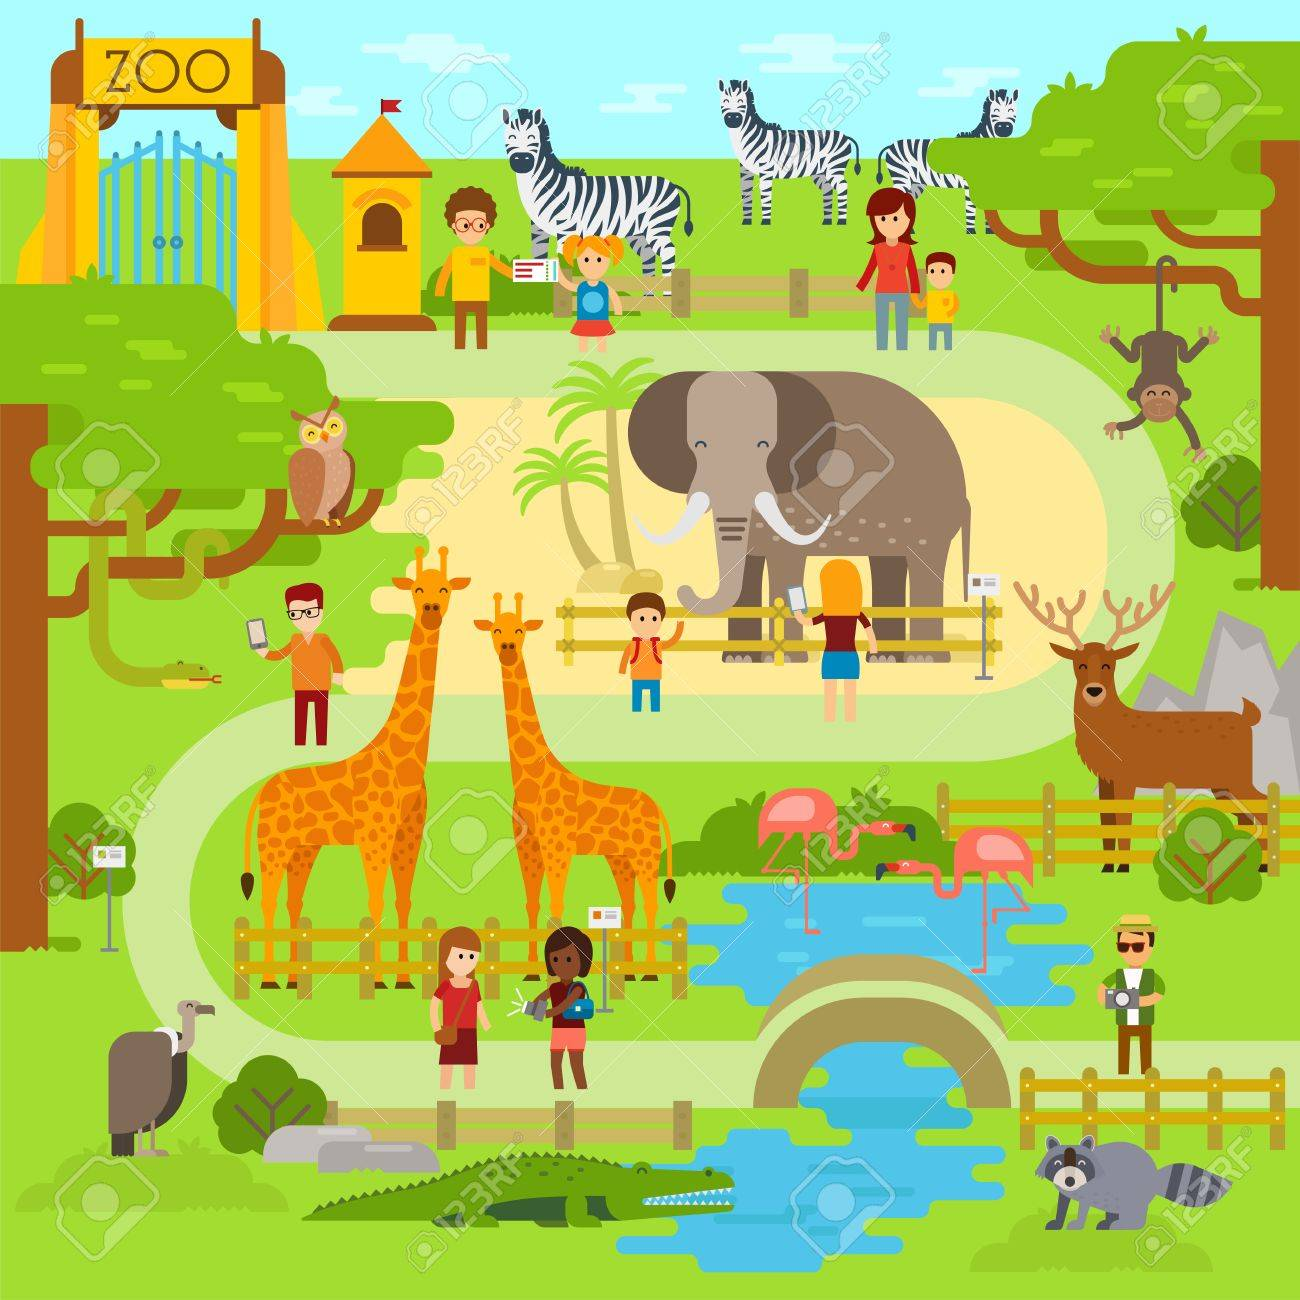 hight resolution of vector zoo vector flat illustration animals vector flat design zoo infographic with elephant people walk in the park zoo zoo map banner